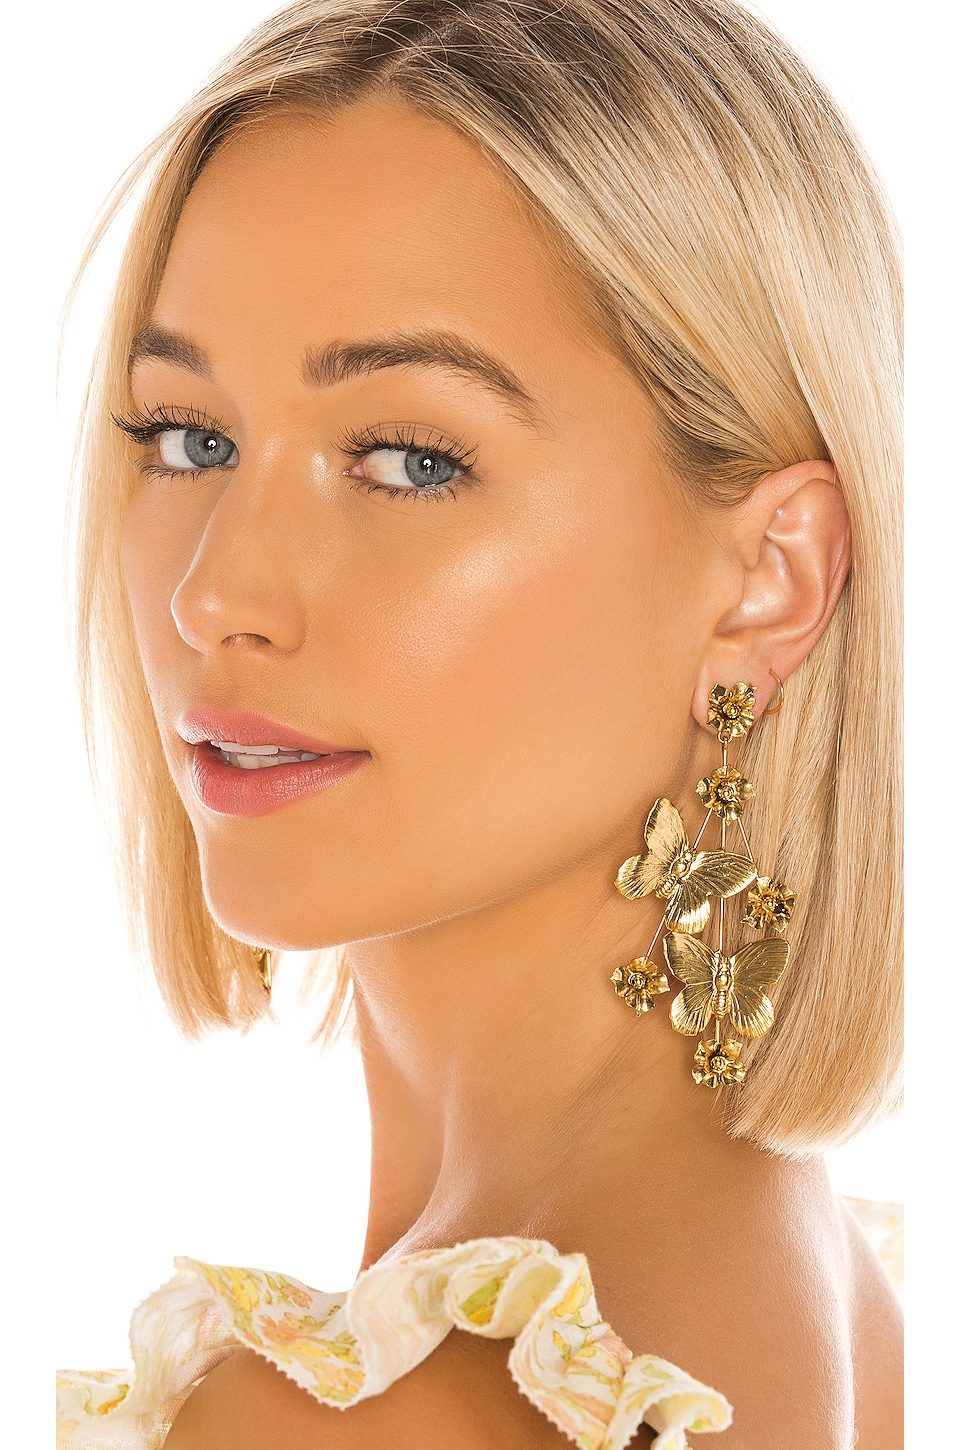 Jennifer Behr Farfalla Earring in gold